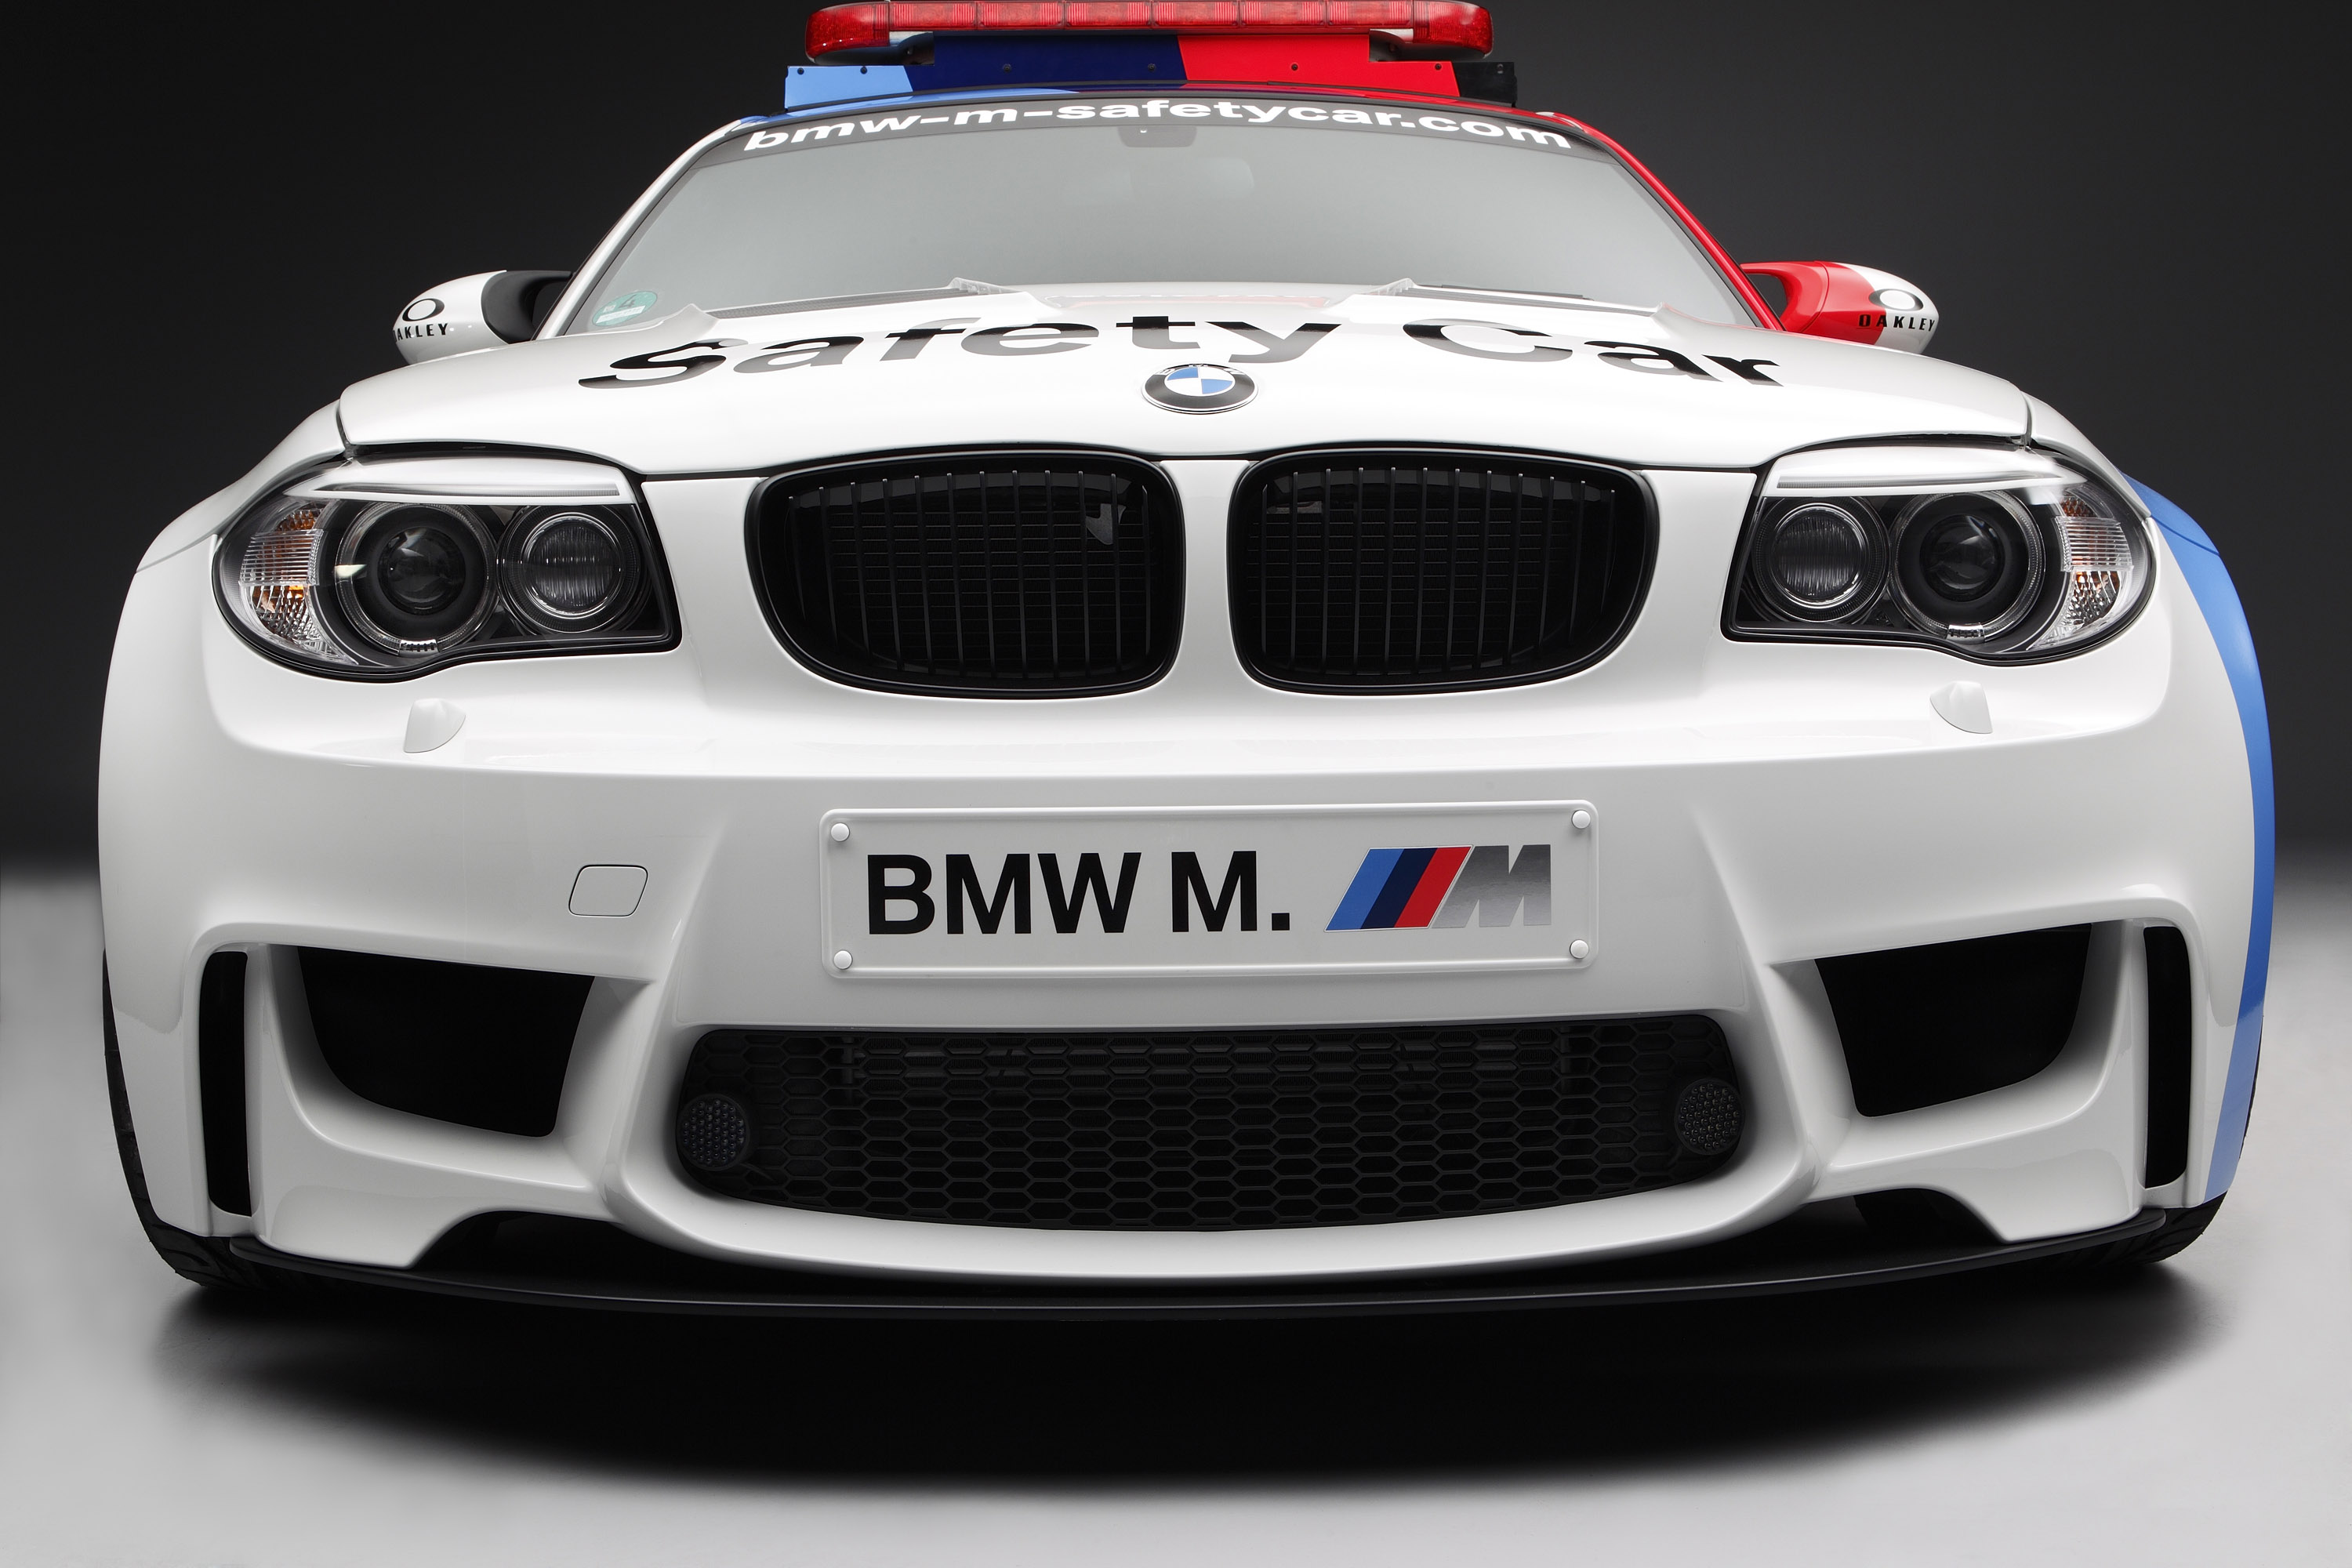 BMW 1 Series M Coupe Safety Car - Picture 51035